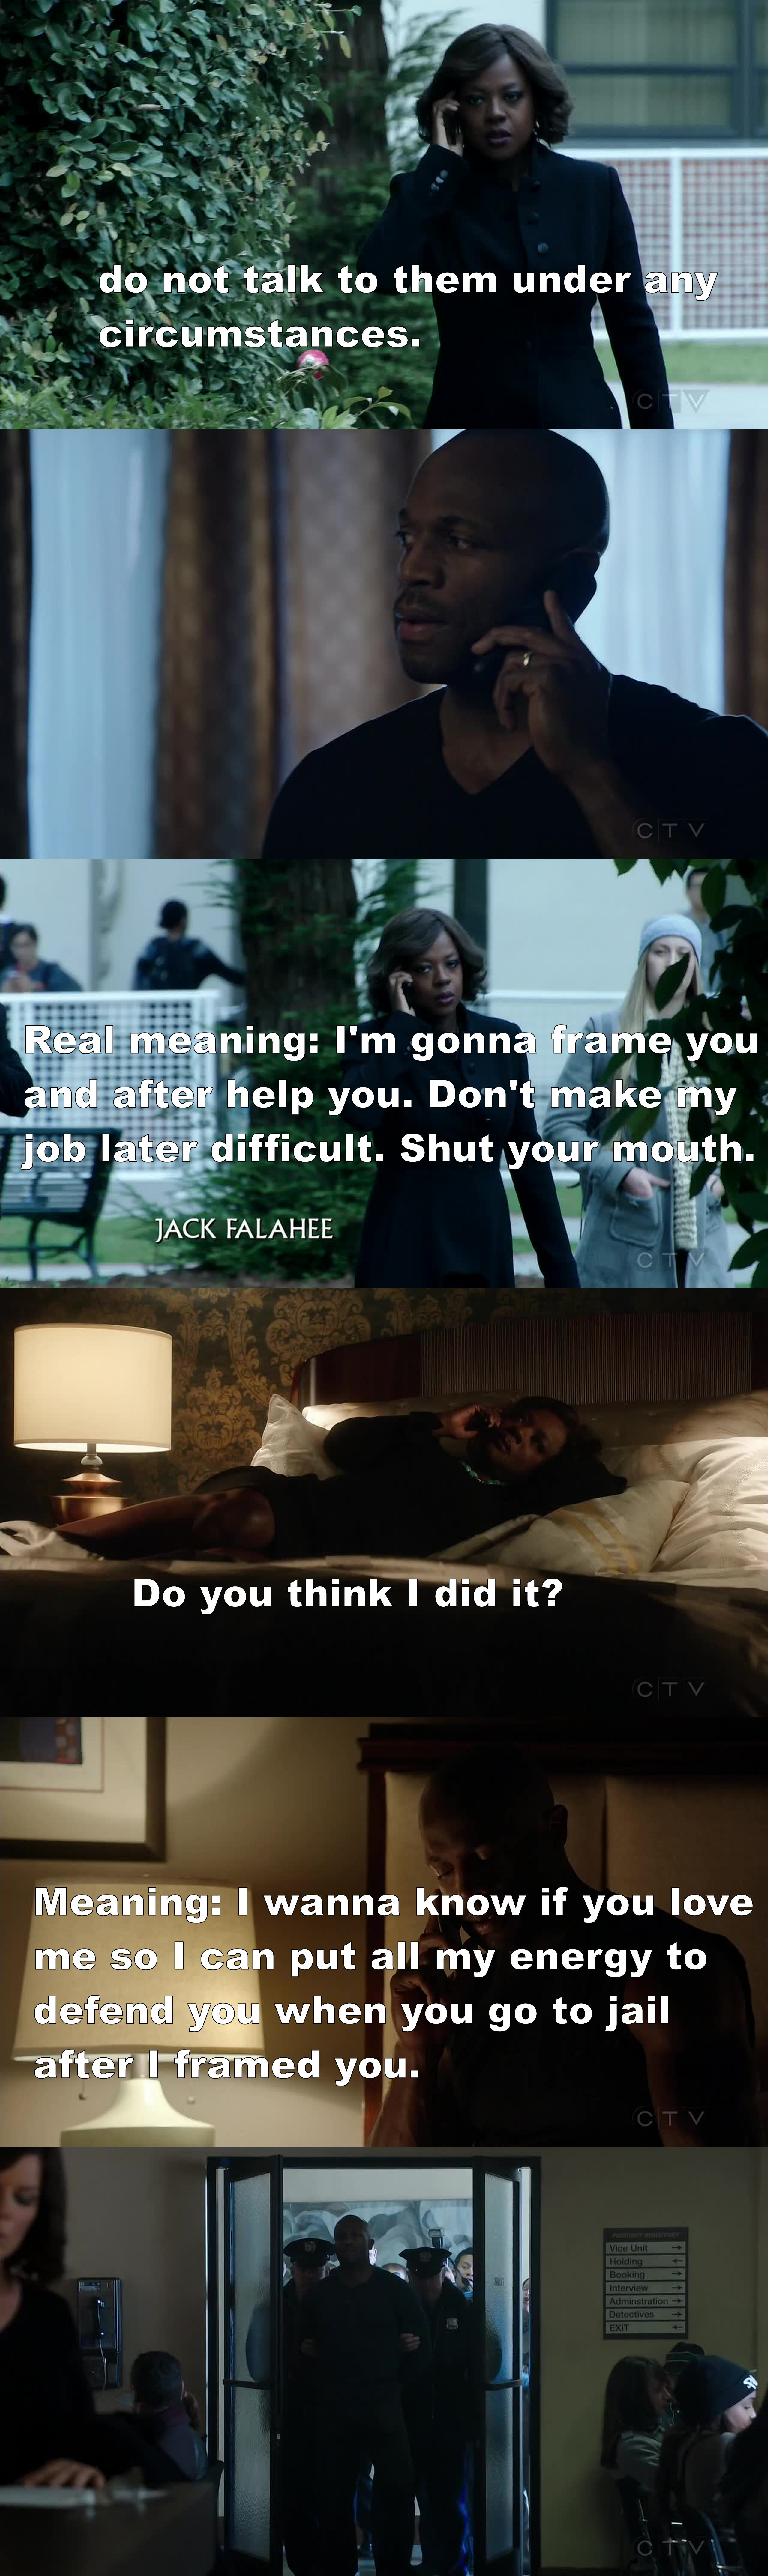 Everybody needs a PhD in Annalise Keating.  You have to understand the double meaning in everything she says and does.  This woman is too shady!   She threw her lover Nate under the bus for the second time.  She framed him because it would be easier to help him afterwards because she herself planted the evidence.  But that is so fucked up!  She's playing with someone's life.  She's playing God and I wonder what would happen if her plan doesn't work out the way she wants and Nate gets death penalty for allegedly killing Sam Keating.  That would be a Season ending twist all by itself.   You bet you need your Mama Annalise. You really need someone to get you straight!  Cannot wait to see Ms Cecily Tyson next week. At this point, she's everybody's mama :)